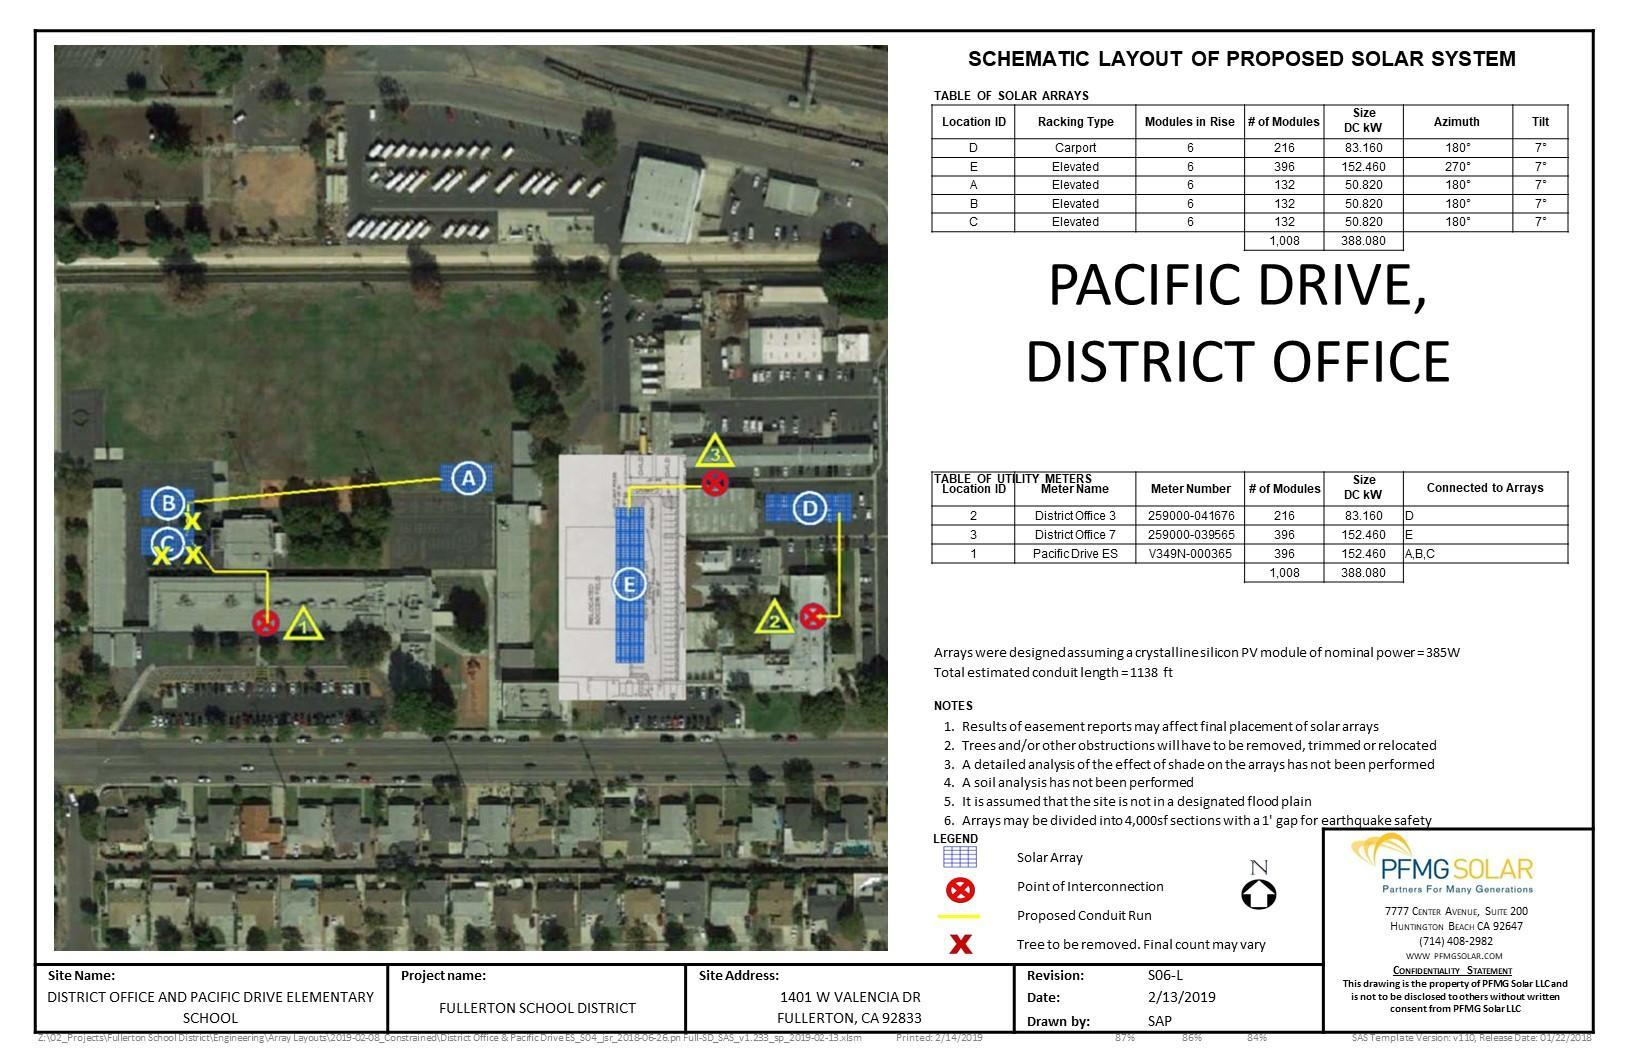 Pacific Drive Elementary, District Office Schematic Layout of Proposed Solar System